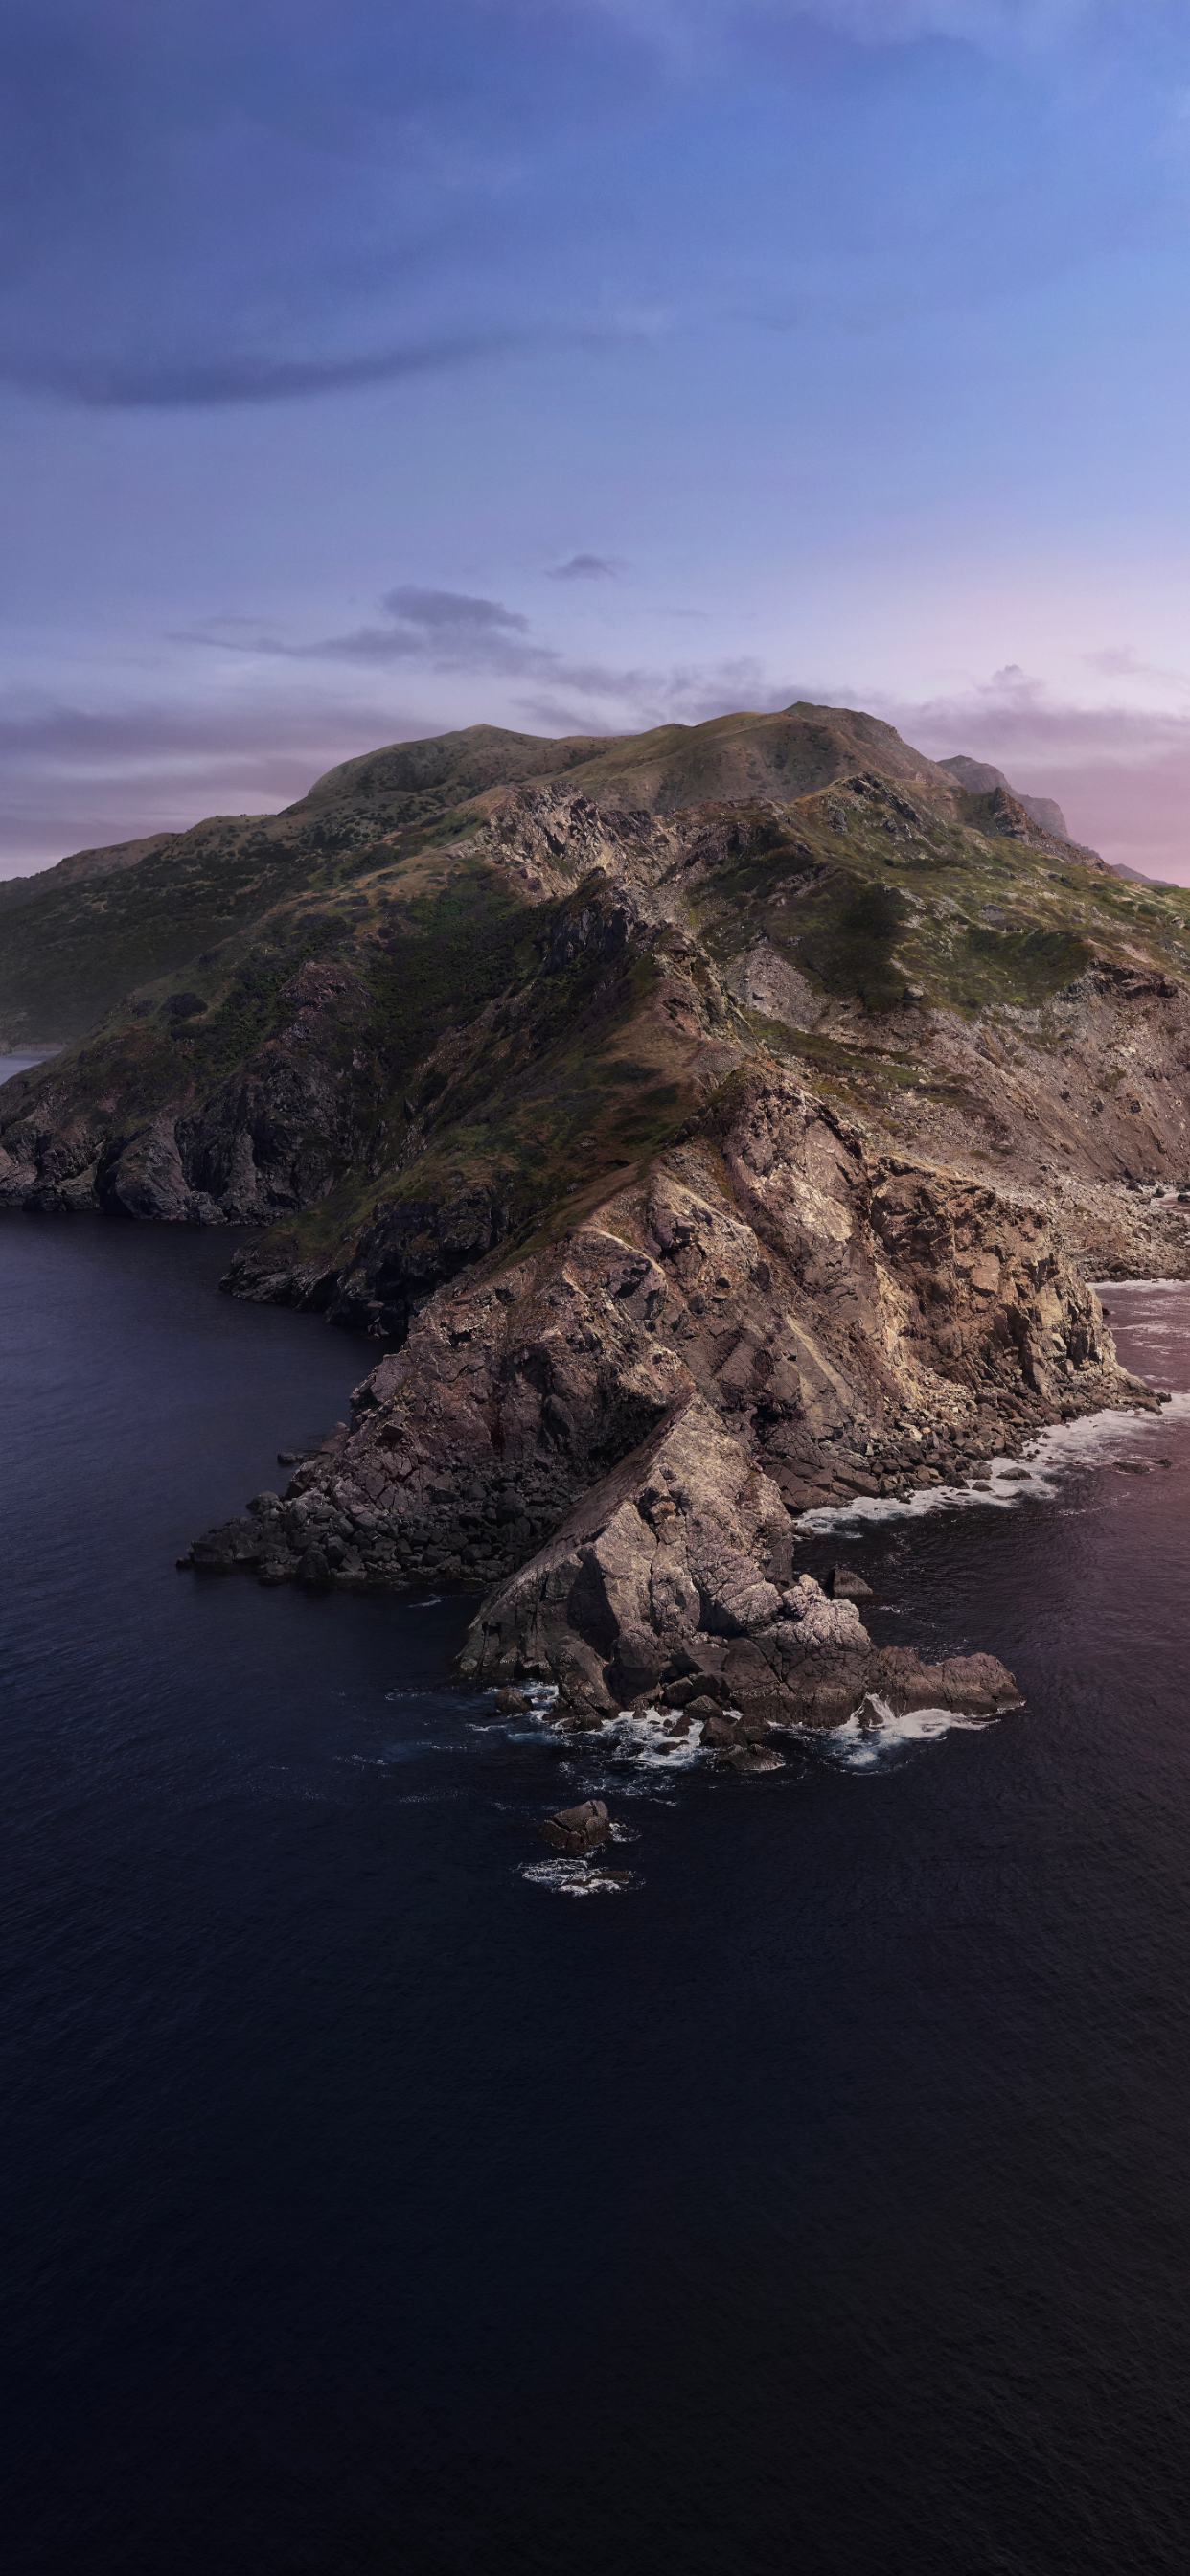 macOS Catalina wallpaper for iPhone in 2020   Iphone ...